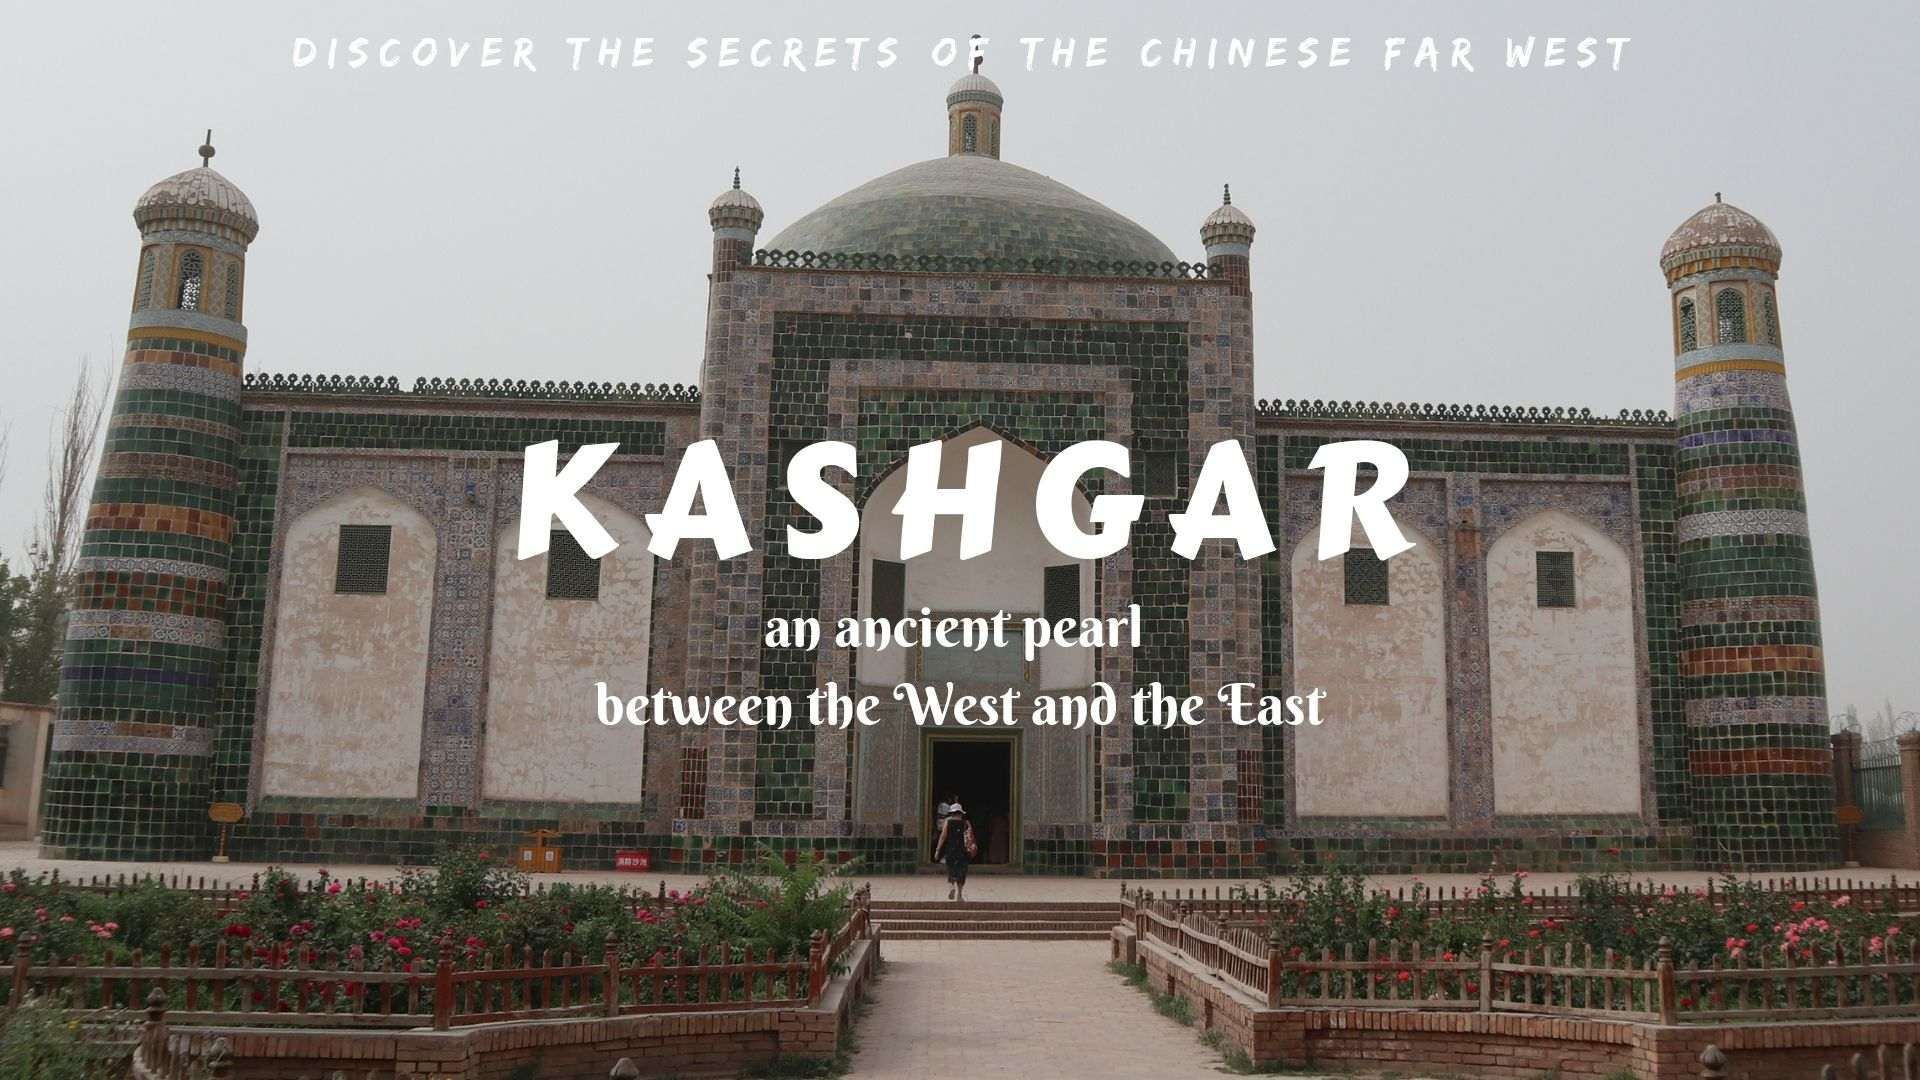 Kashgar- an ancient pearl between the West and the East